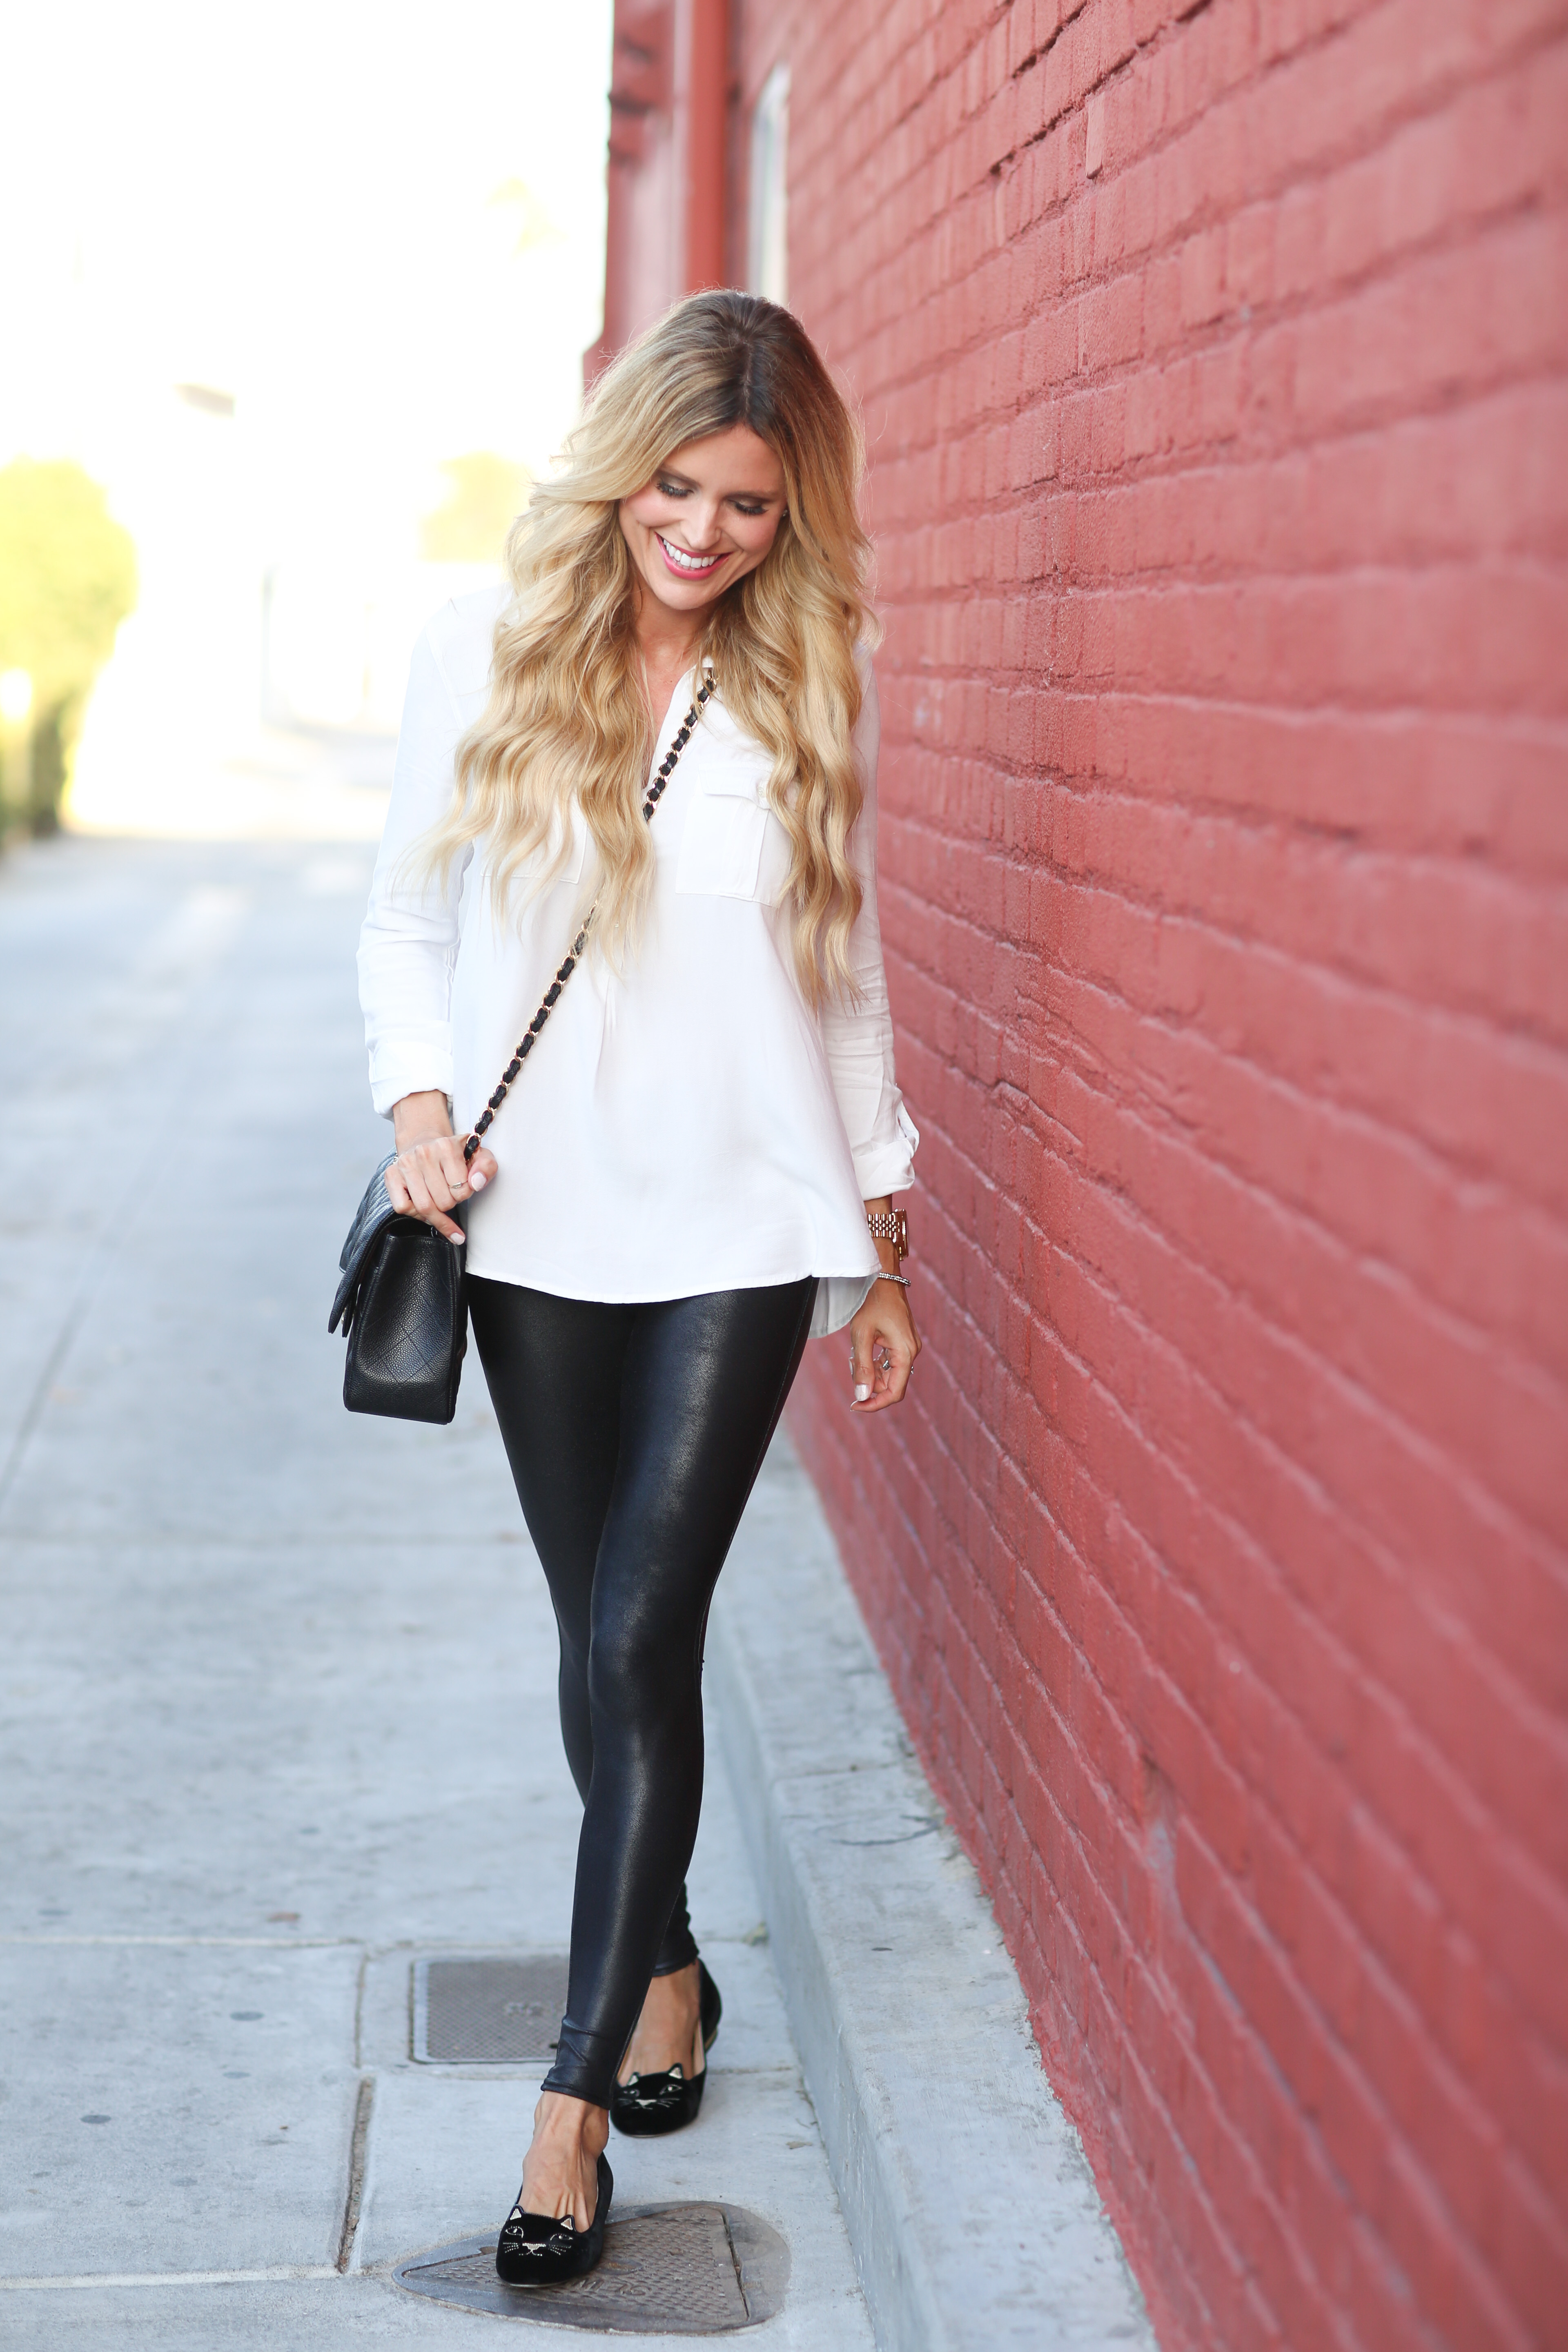 Faux leather leggings are a great alternative to regular leggings or jeggings. They sill have the comfort and the slim silhouette, but add a badass edge or bit of shine. This look is perfect for running errands, hanging out with friends, and enjoying a relaxed weekend.